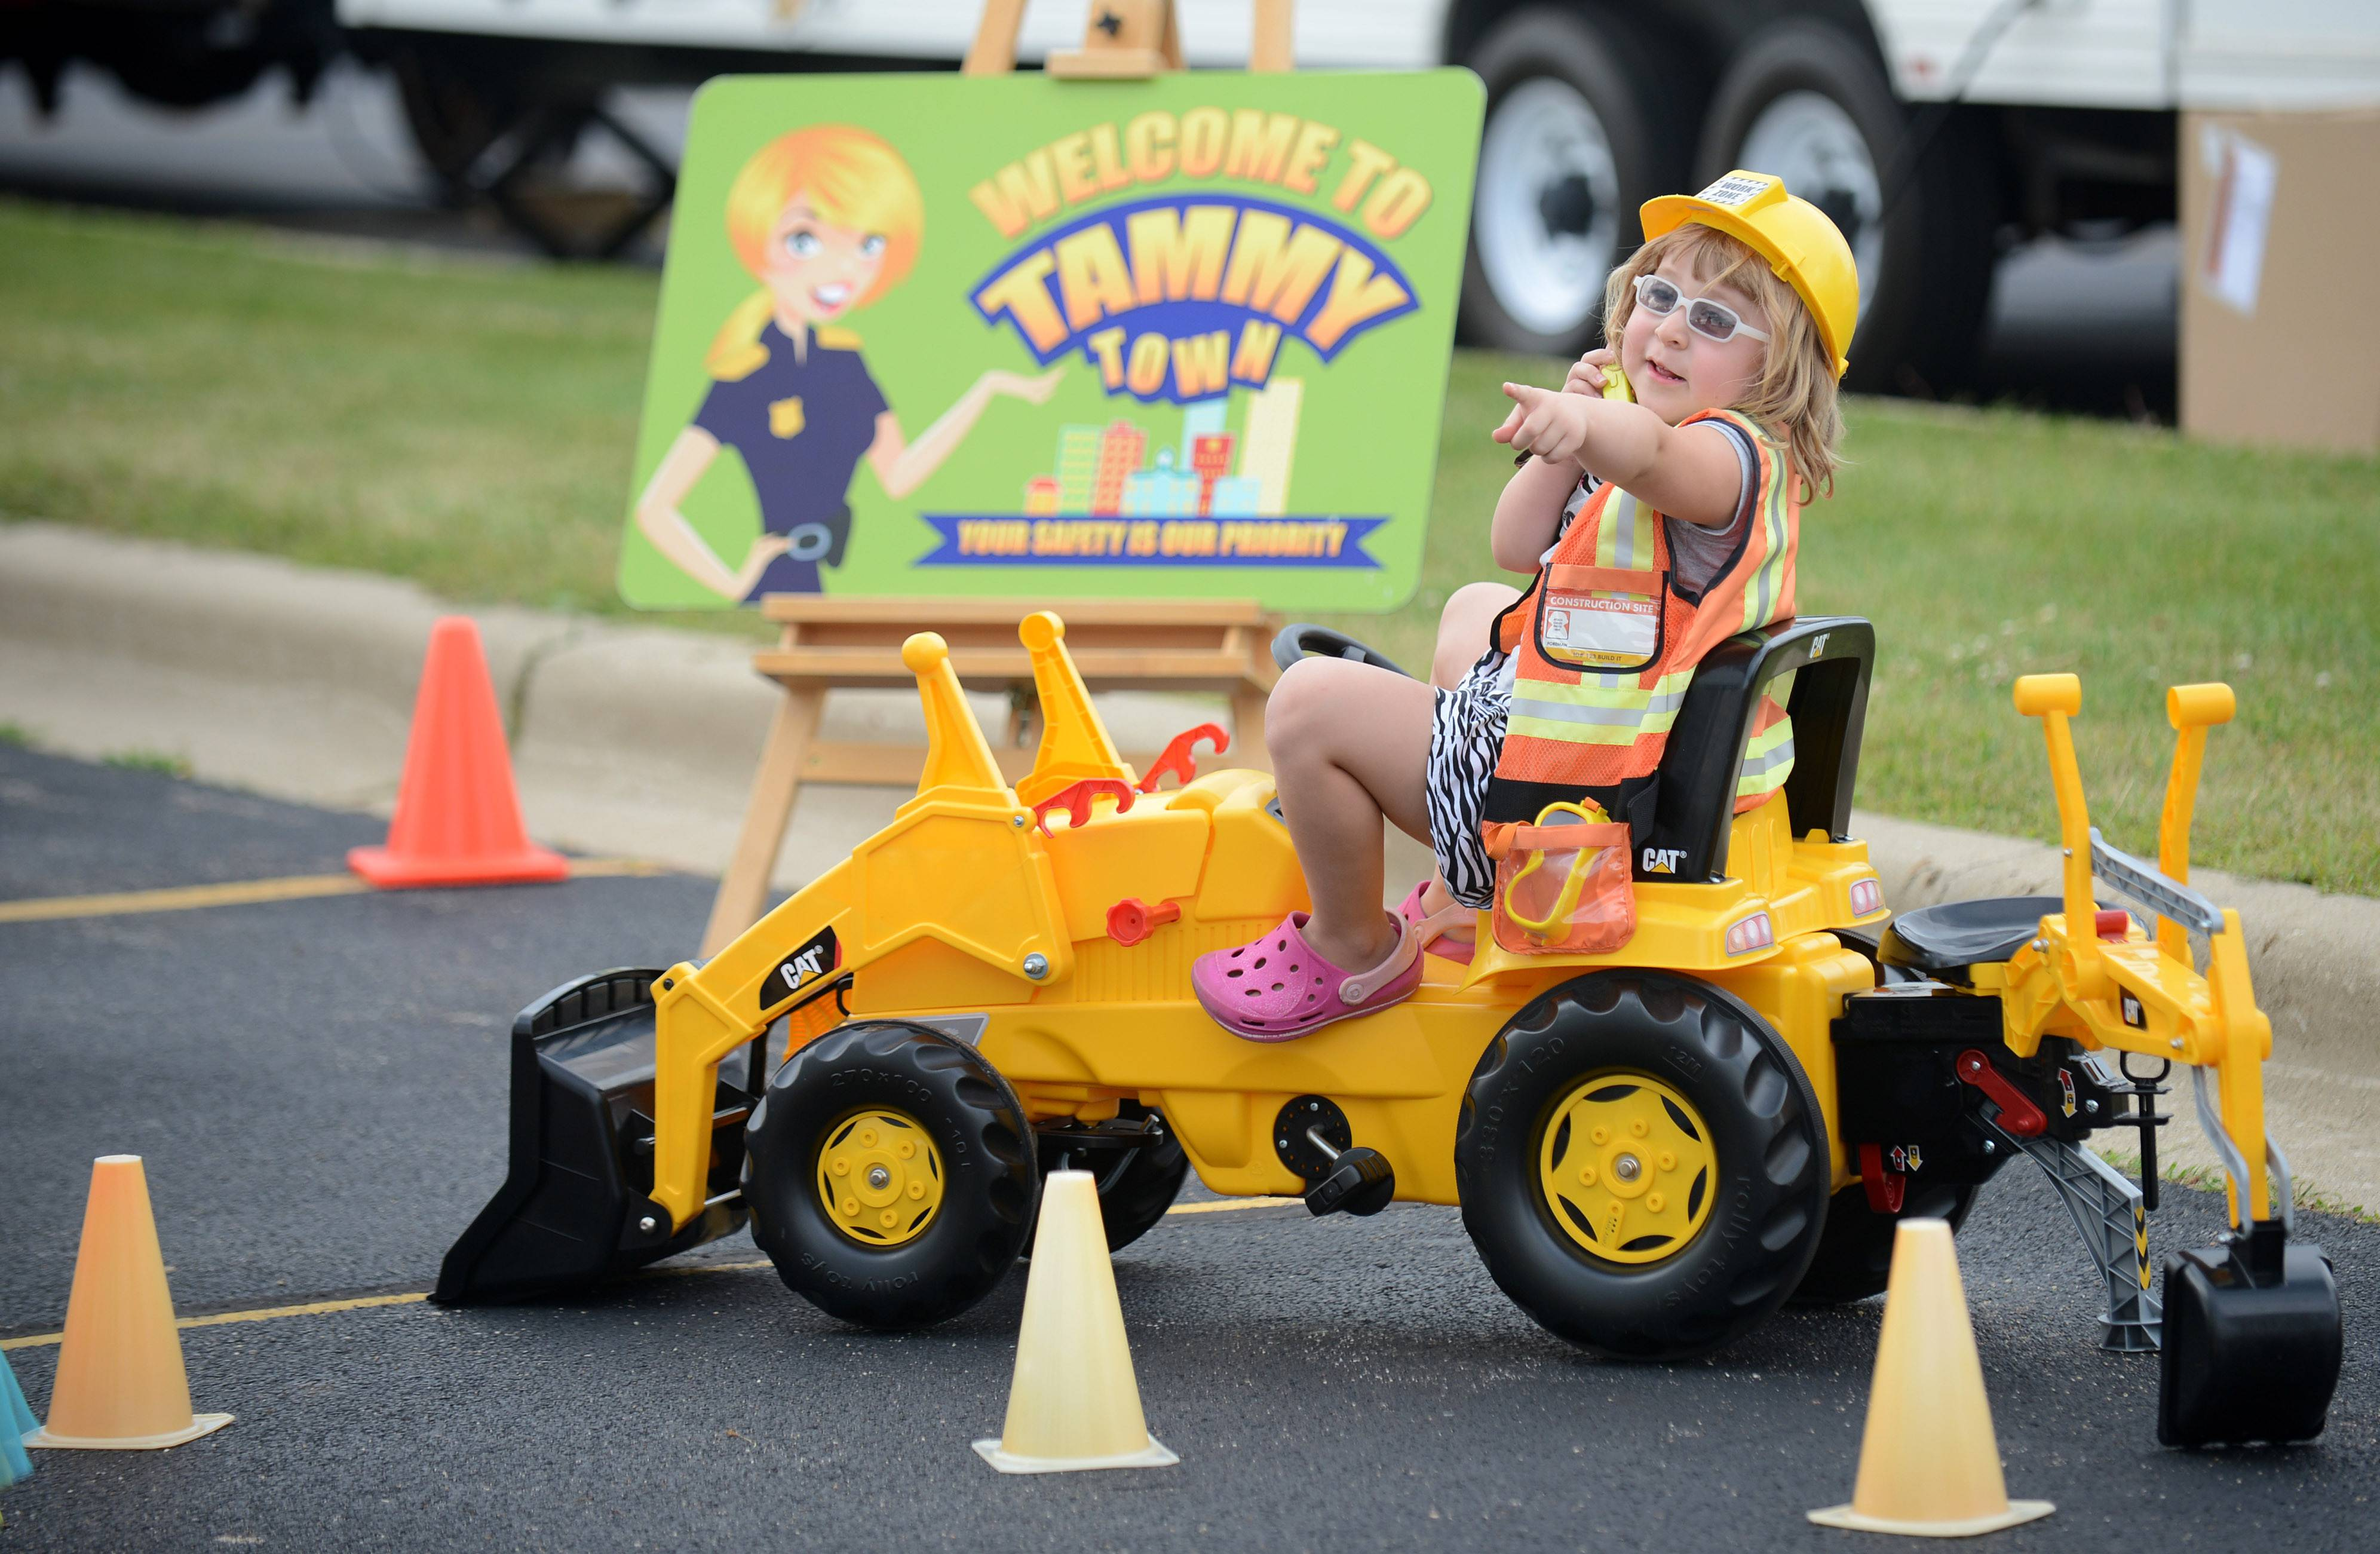 Sydney Sawyer, 4, of South Elgin makes a 911 call to the police while acting the part of a construction worker in the Tammy Town interactive game for kids at South Elgin's National Night Out Against Crime event Tuesday at Jim Hansen Park. The program was created by Bartlett police Officer Tammy Schulz.